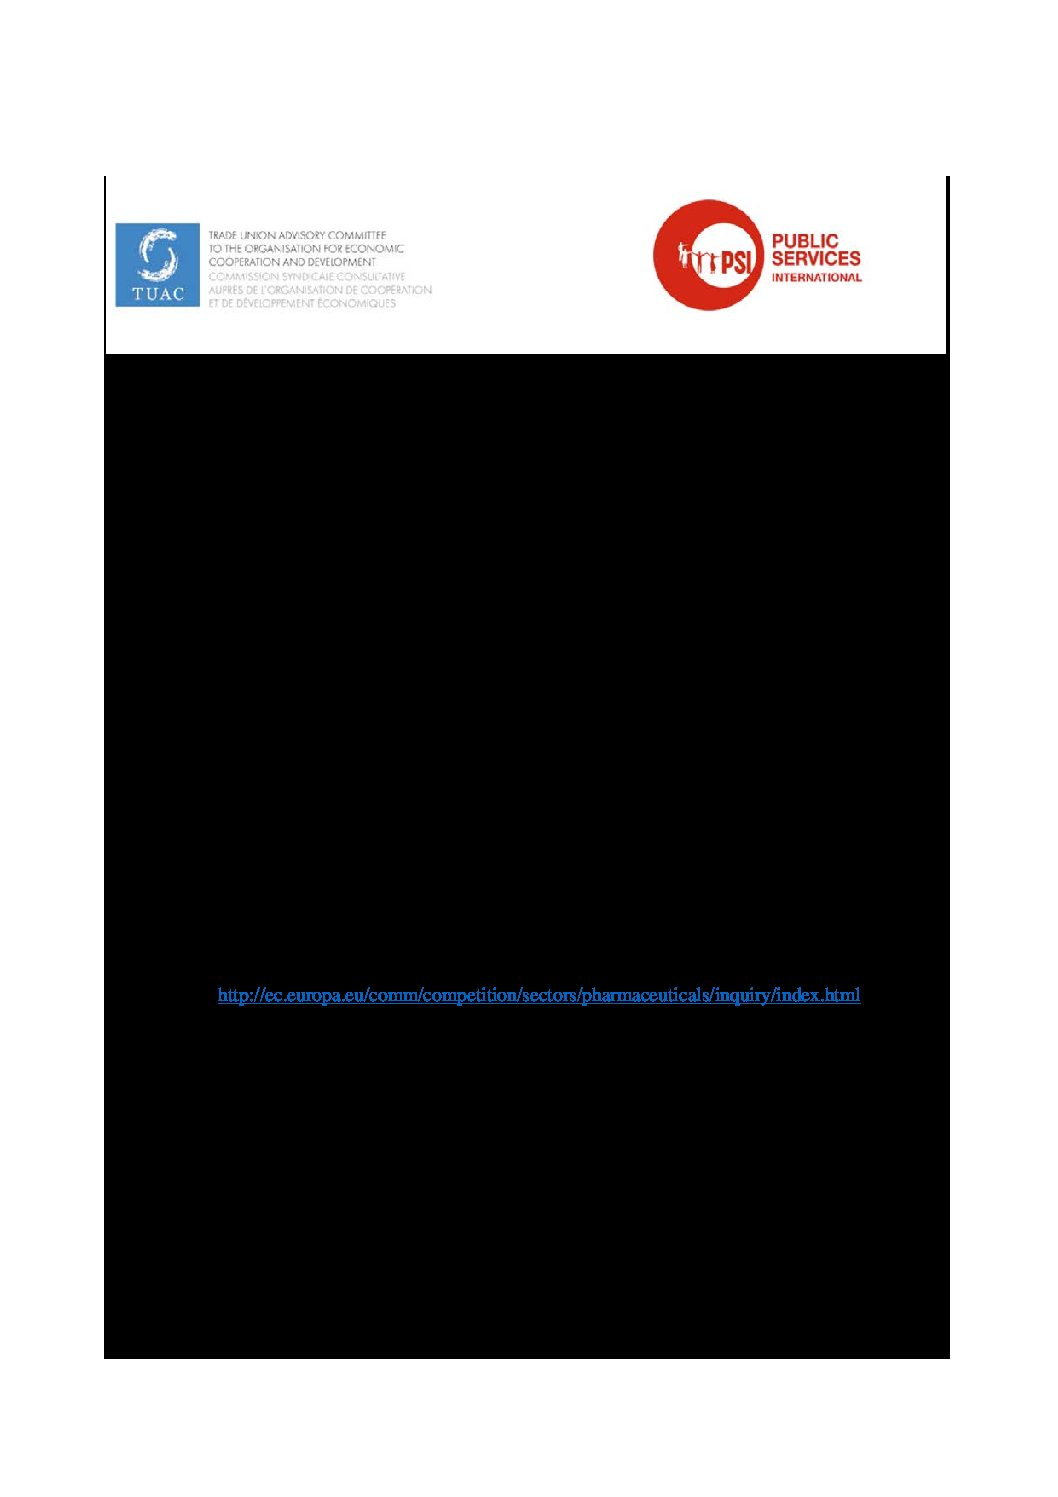 Final-TUAC-PSI-position-on-OECD-Innovative-Treatment-Review-December-2017